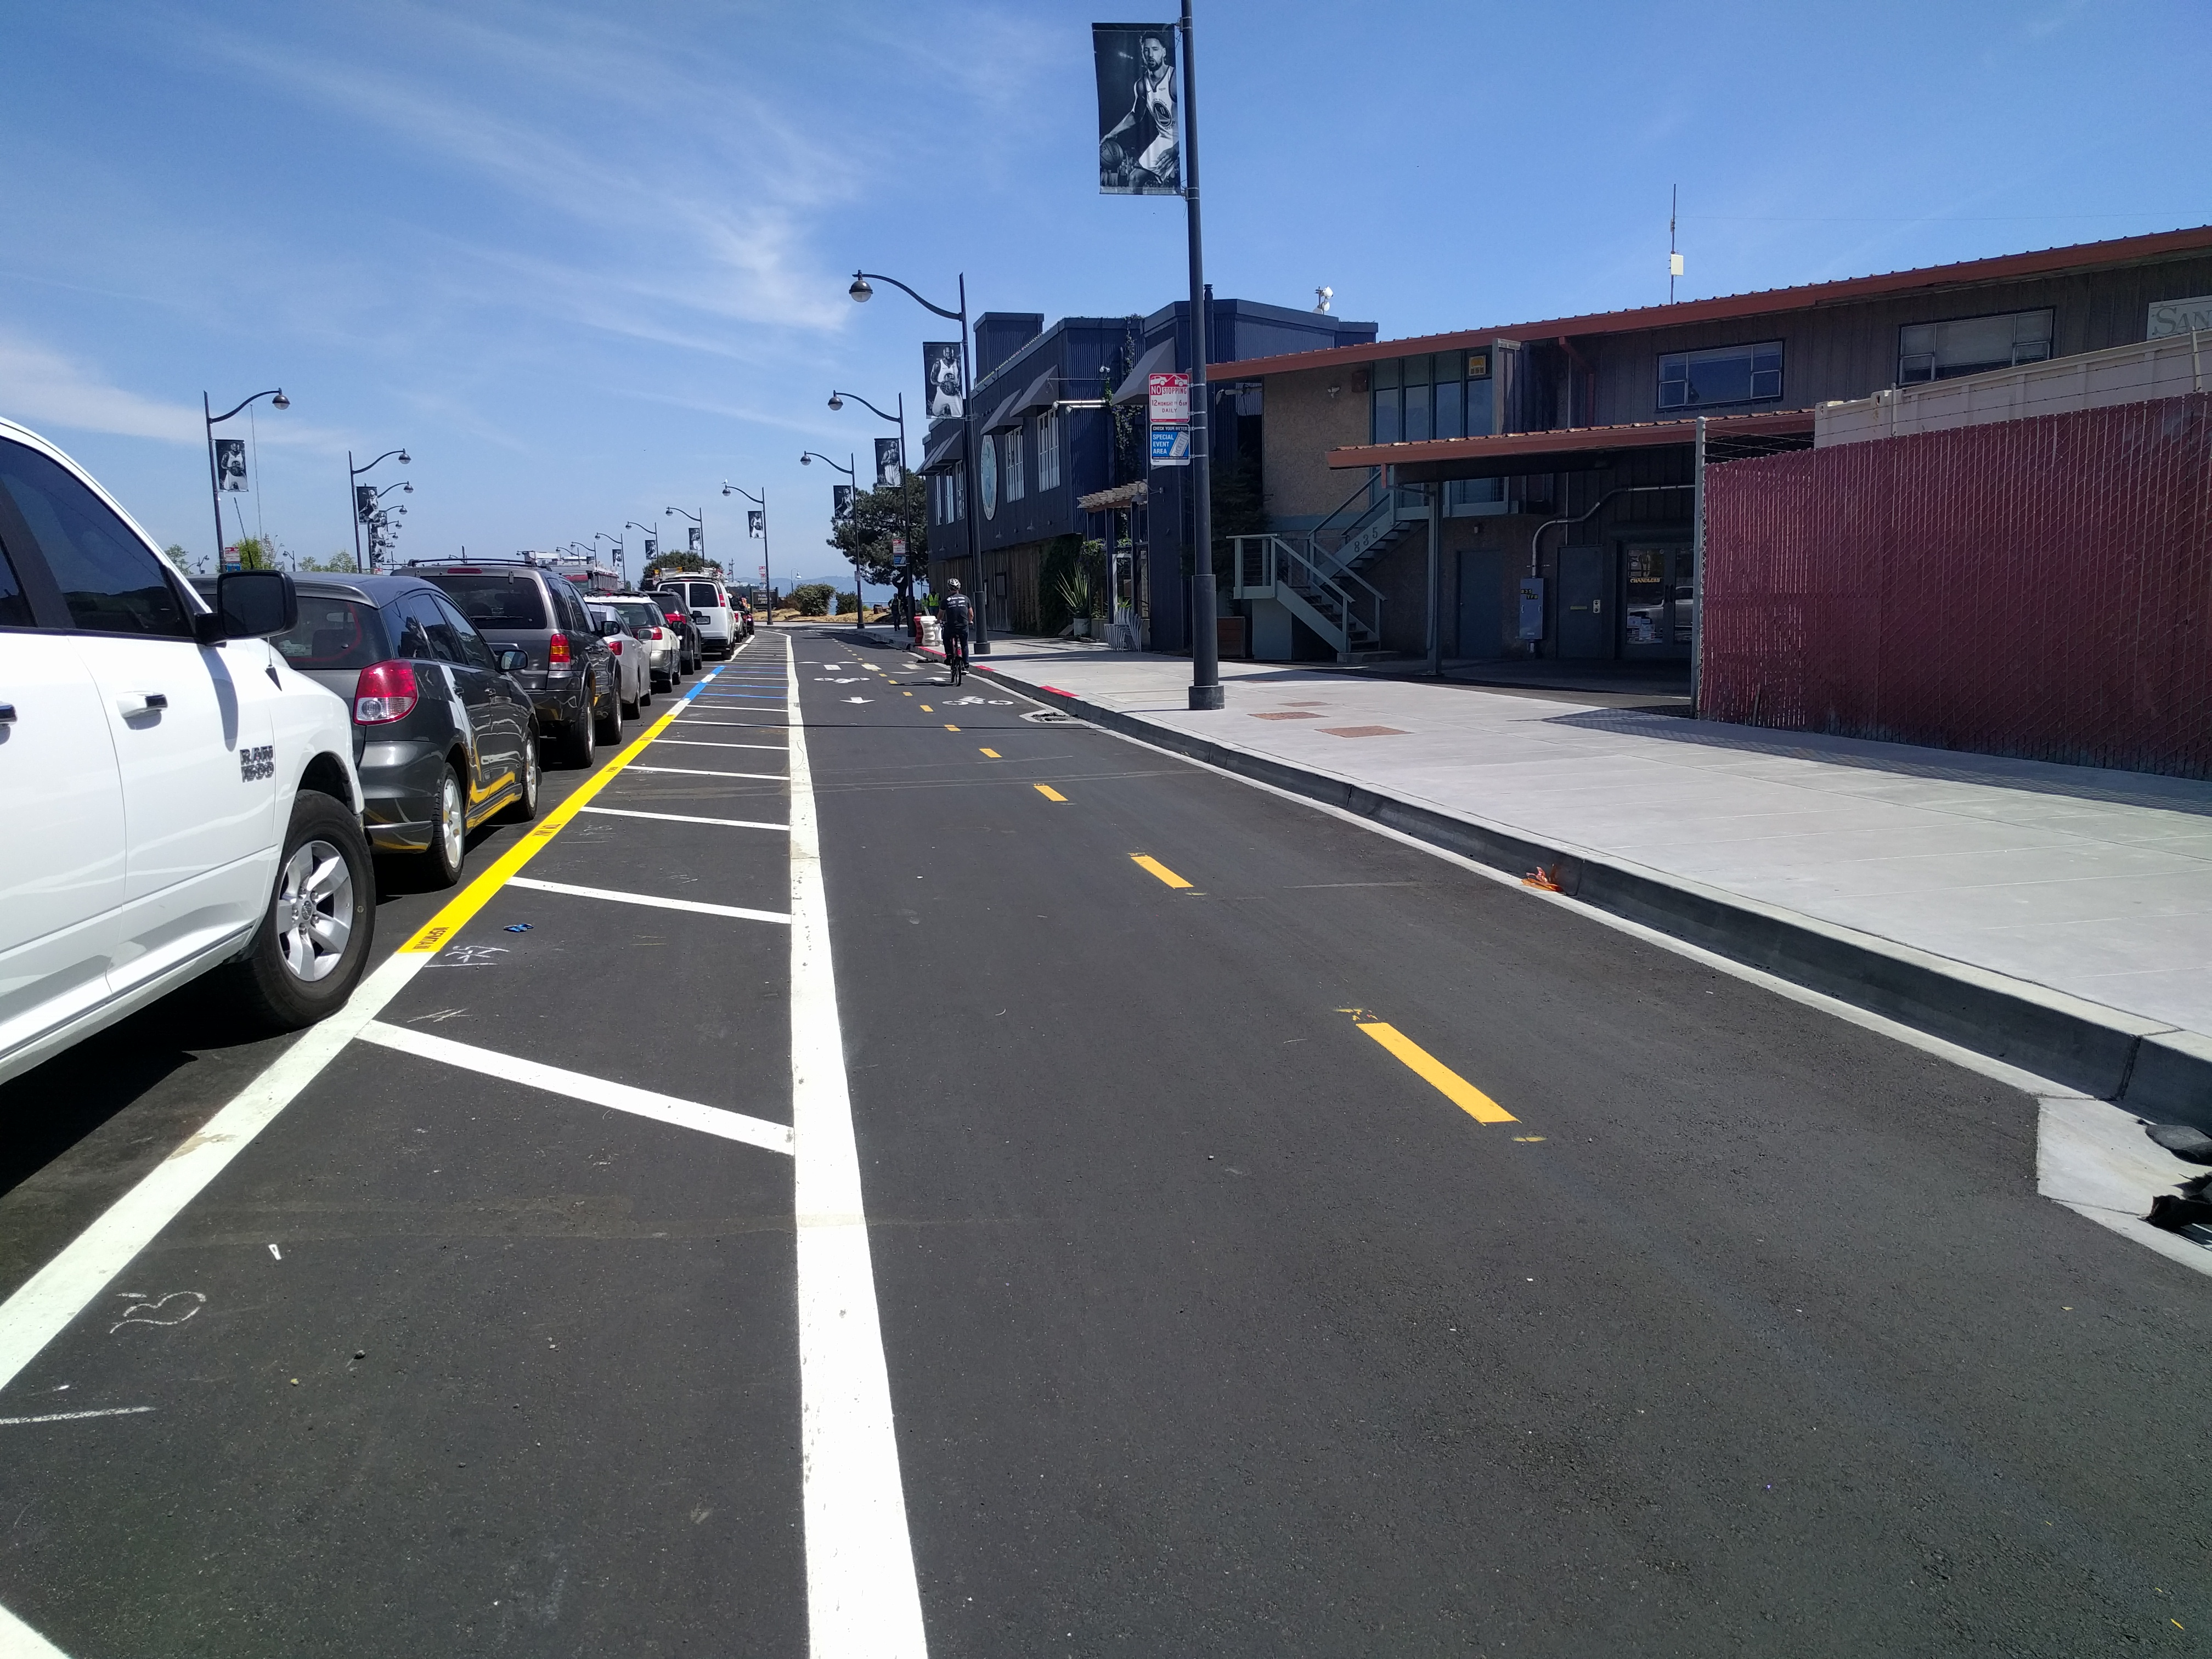 Not many cyclists are able to use this facility yet, due to all the construction around it. But a few have figure it out.